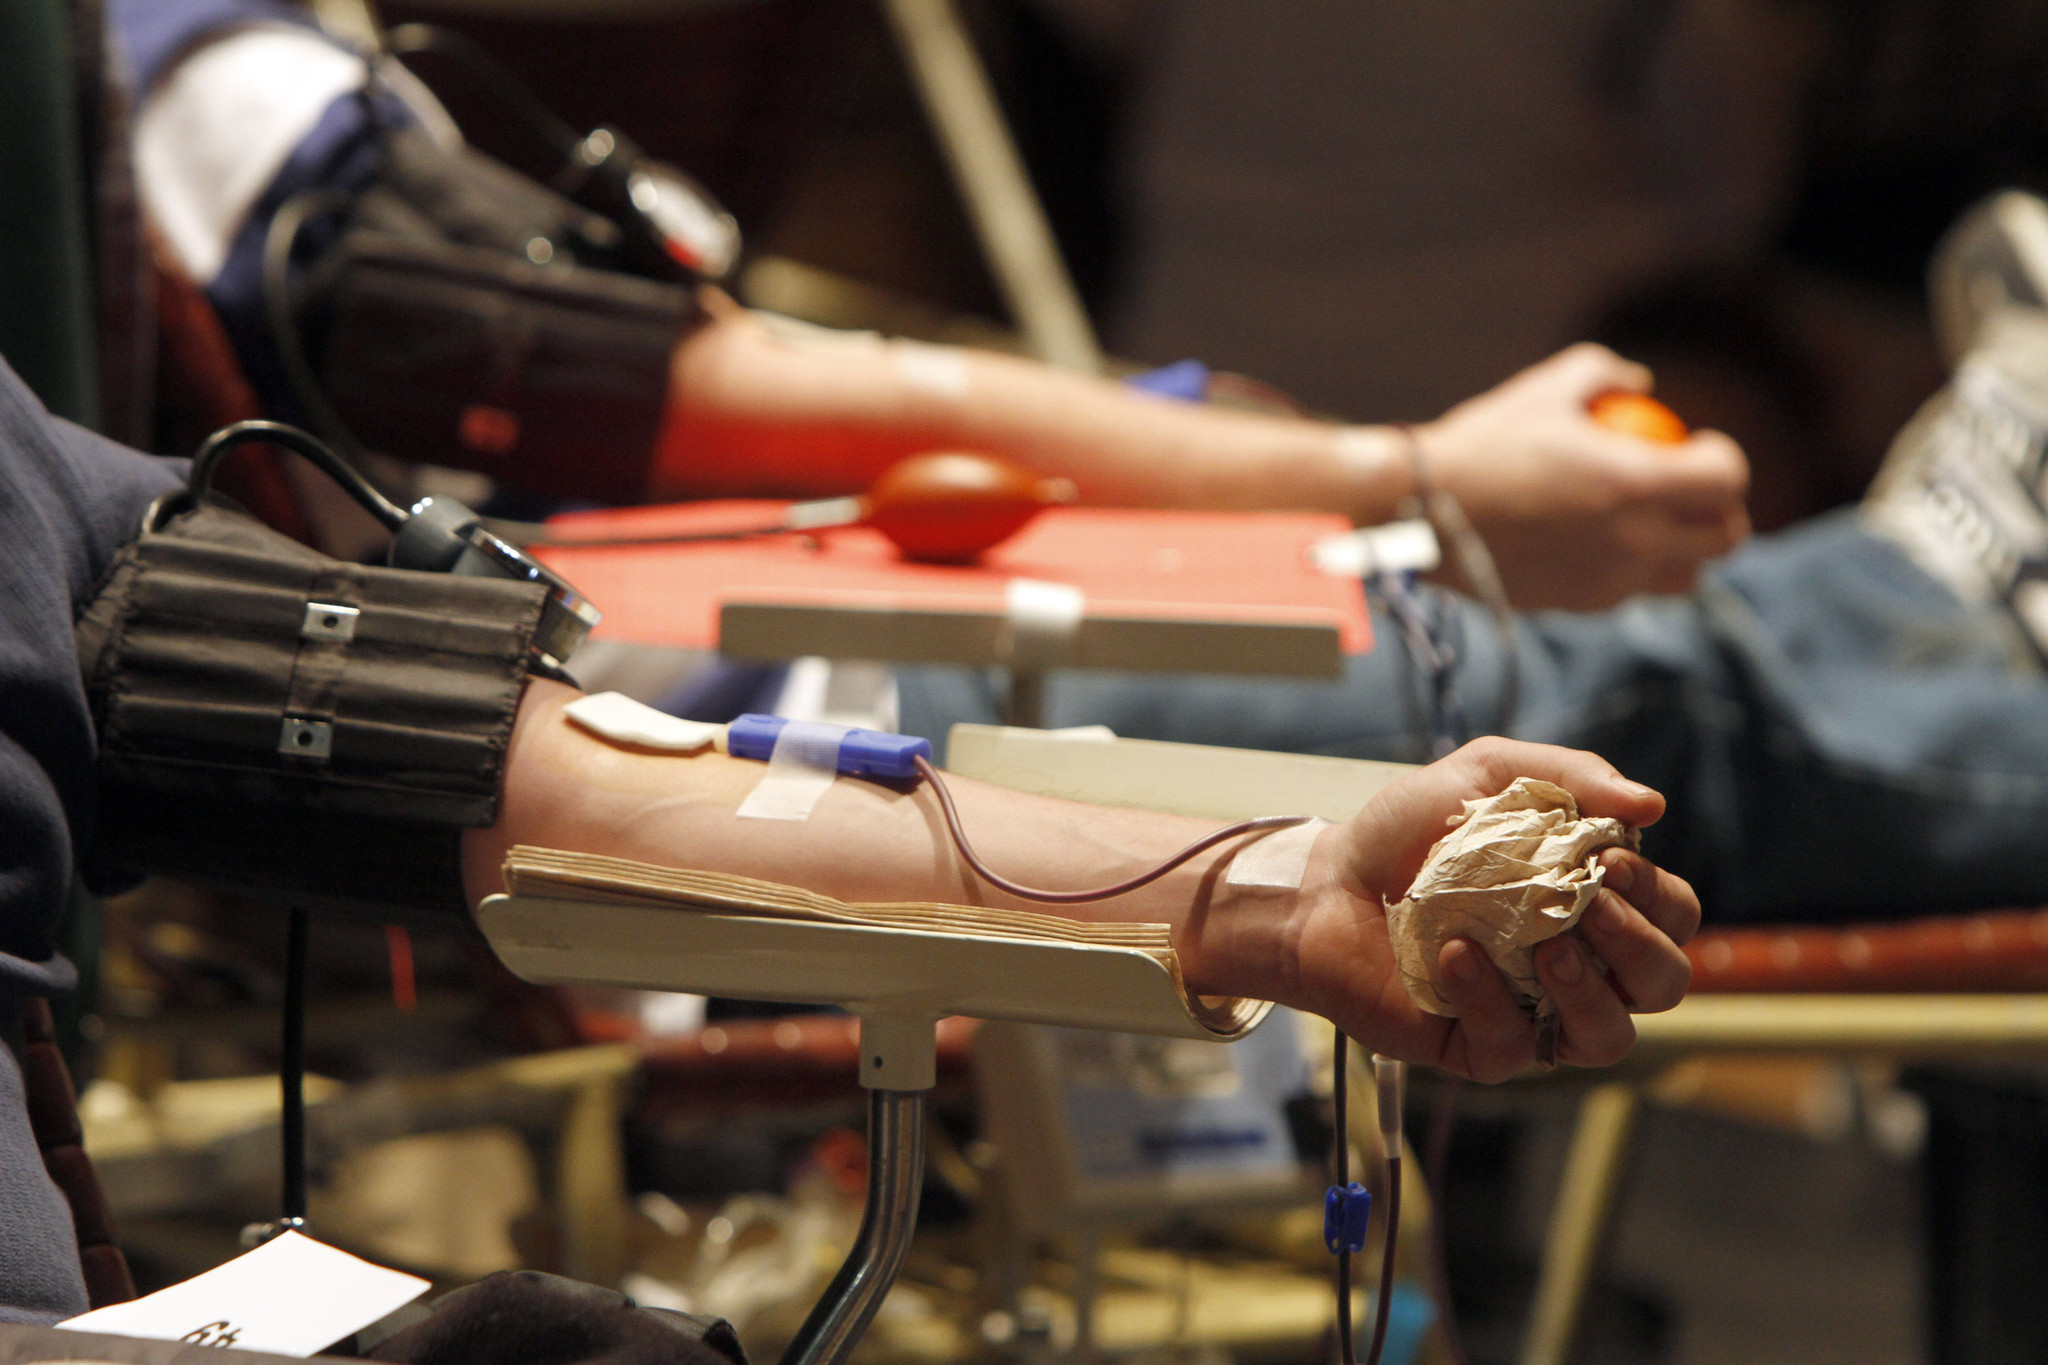 The Senate voted to no longer make it a felony for HIV-positive people to donate blood or semen without telling the blood bank they are infected. (Toby Talbot / Associated Press)